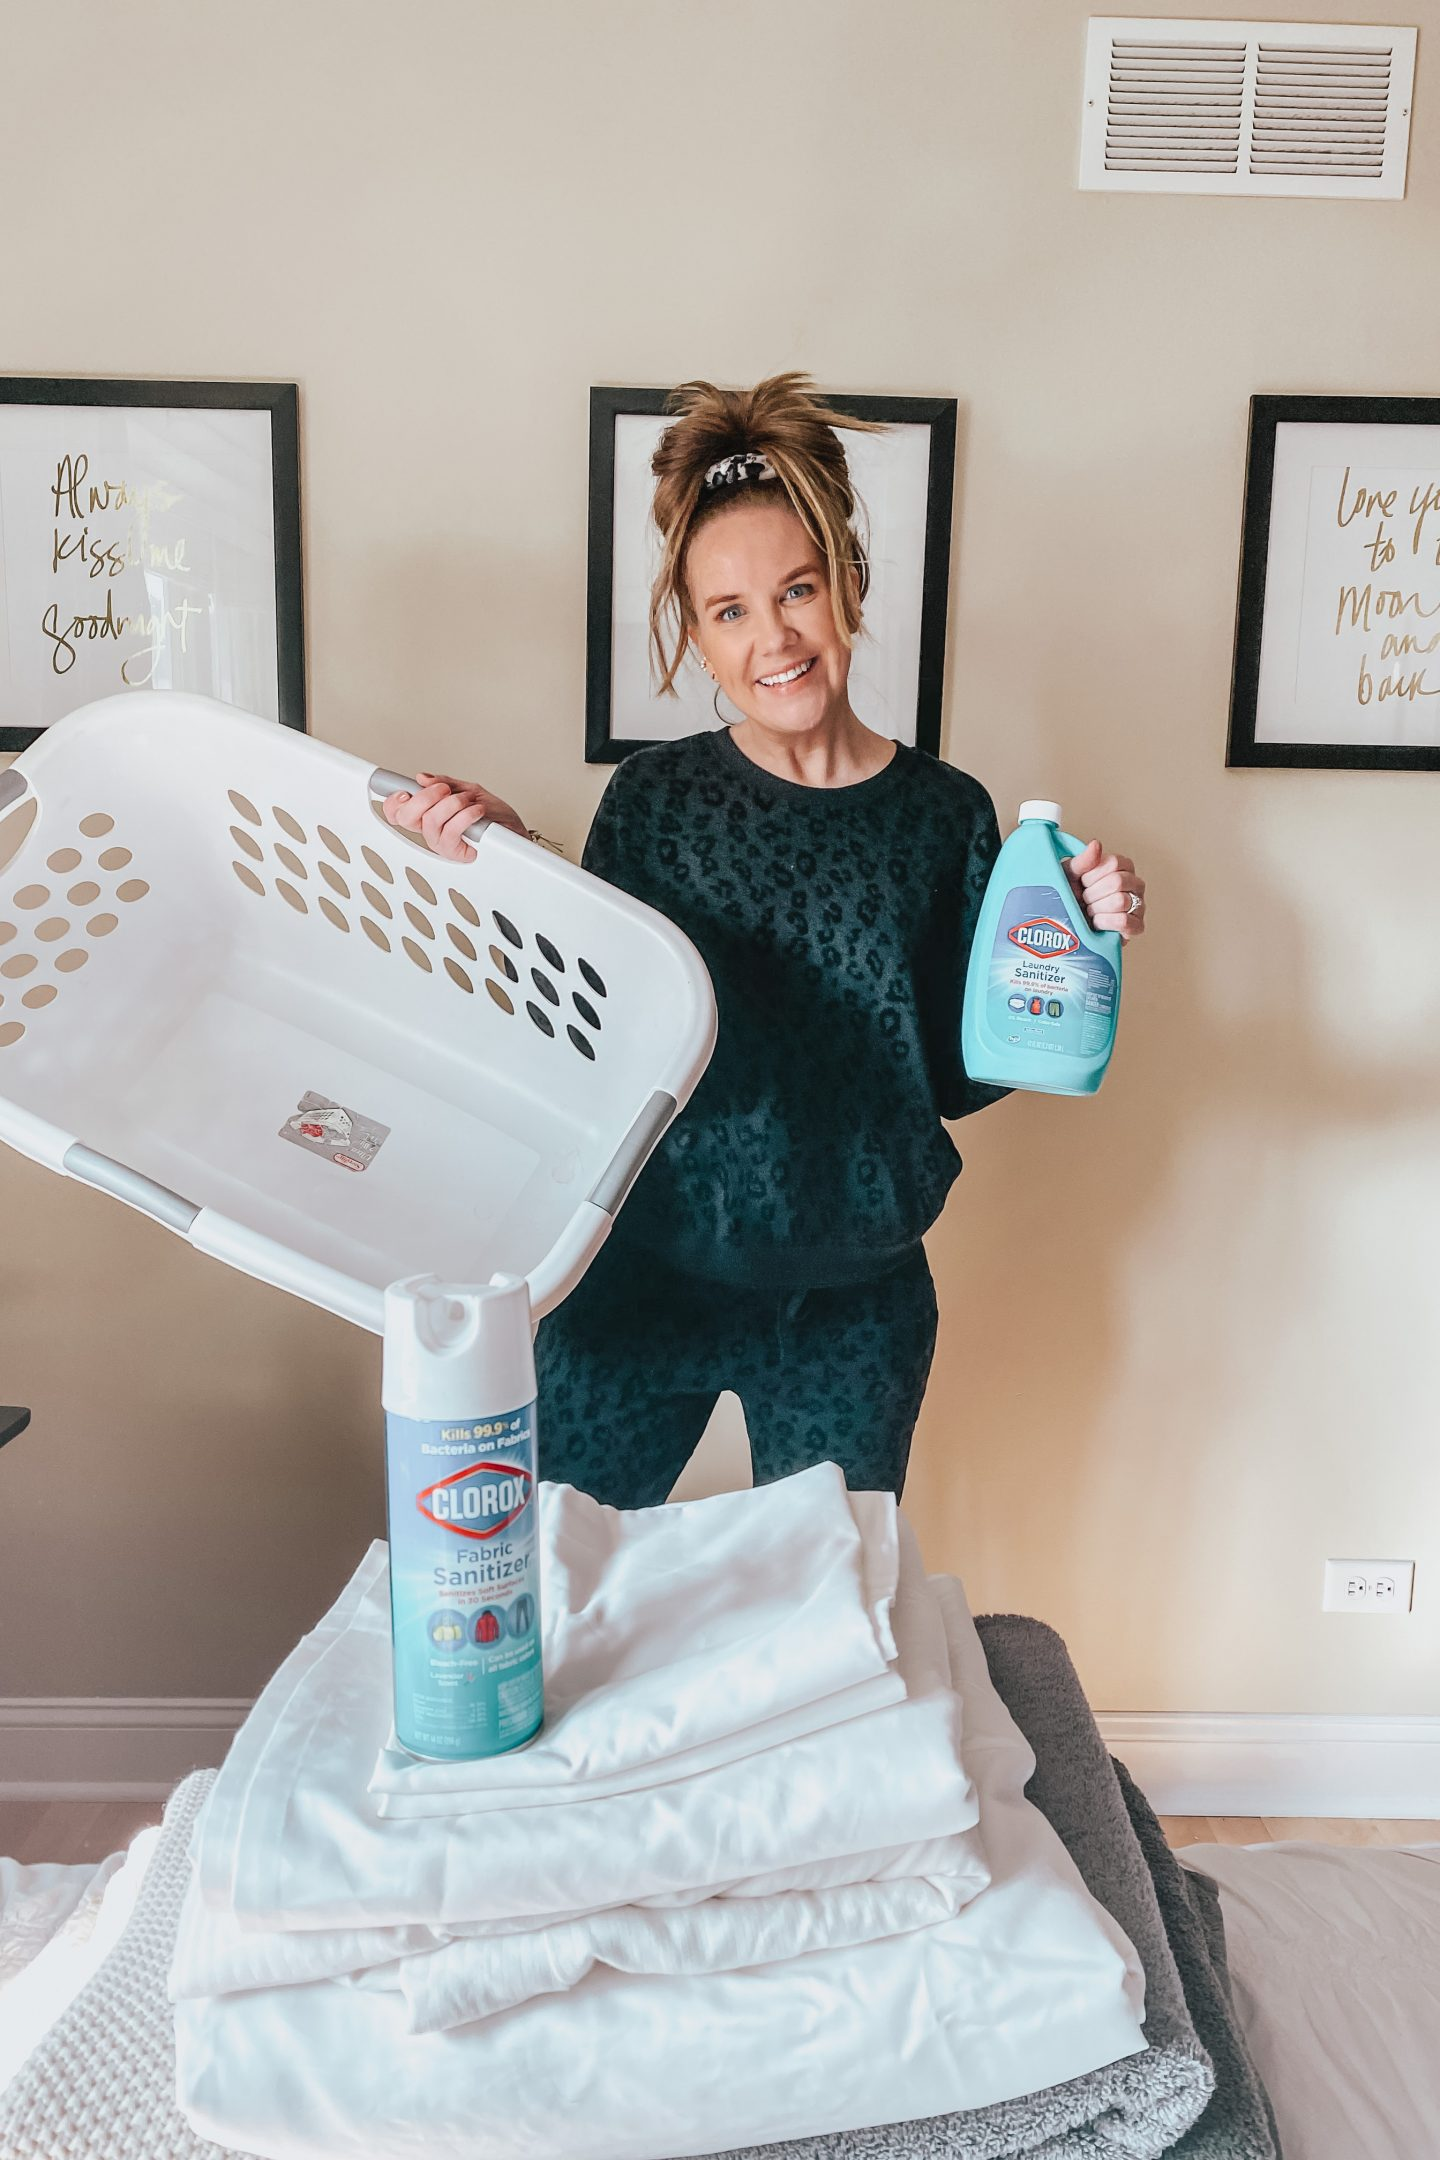 How to Disinfect Laundry with Clorox Laundry Sanitizer